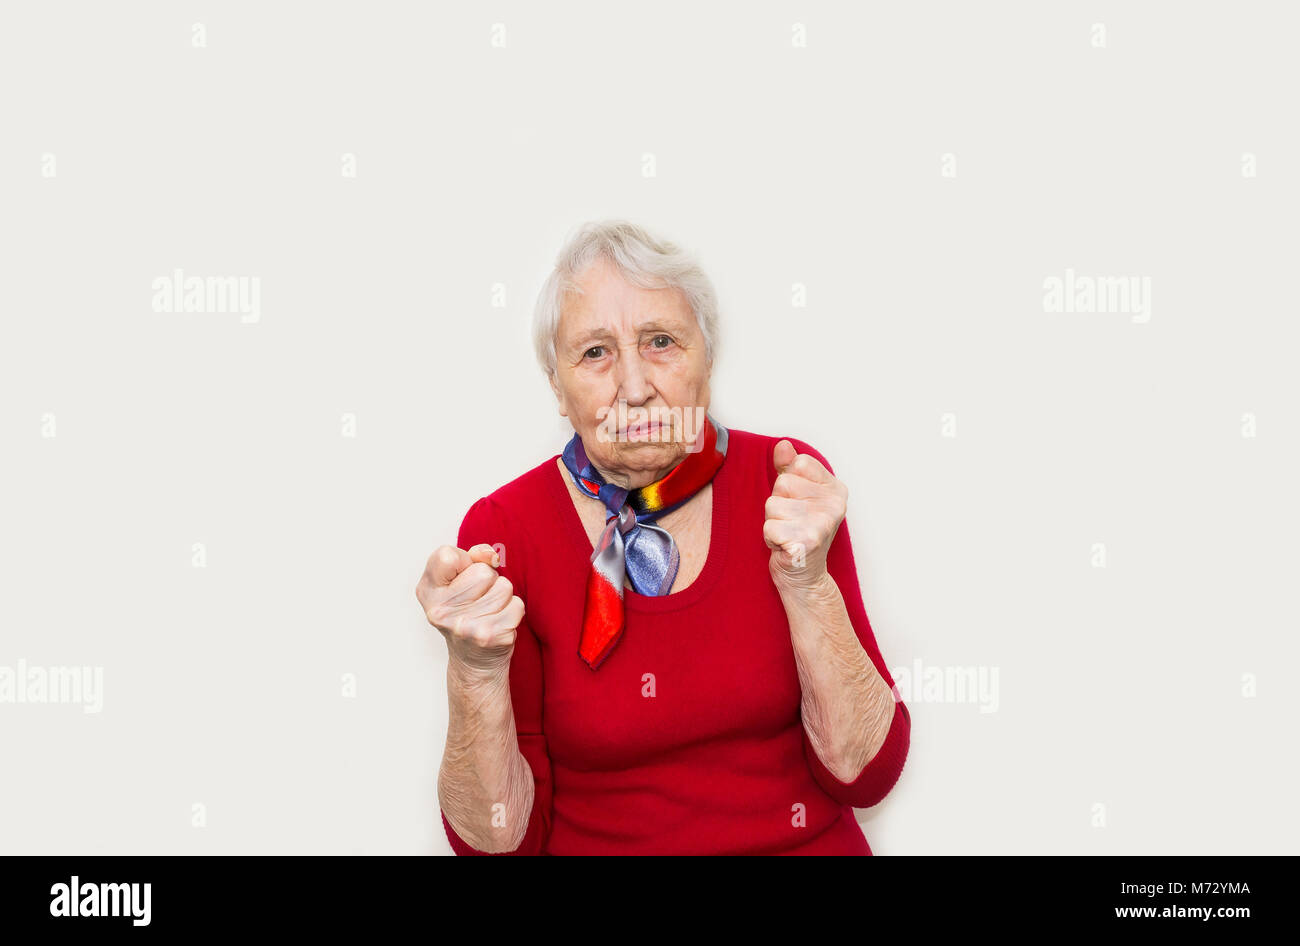 Angry old woman making fists on white background - Stock Image